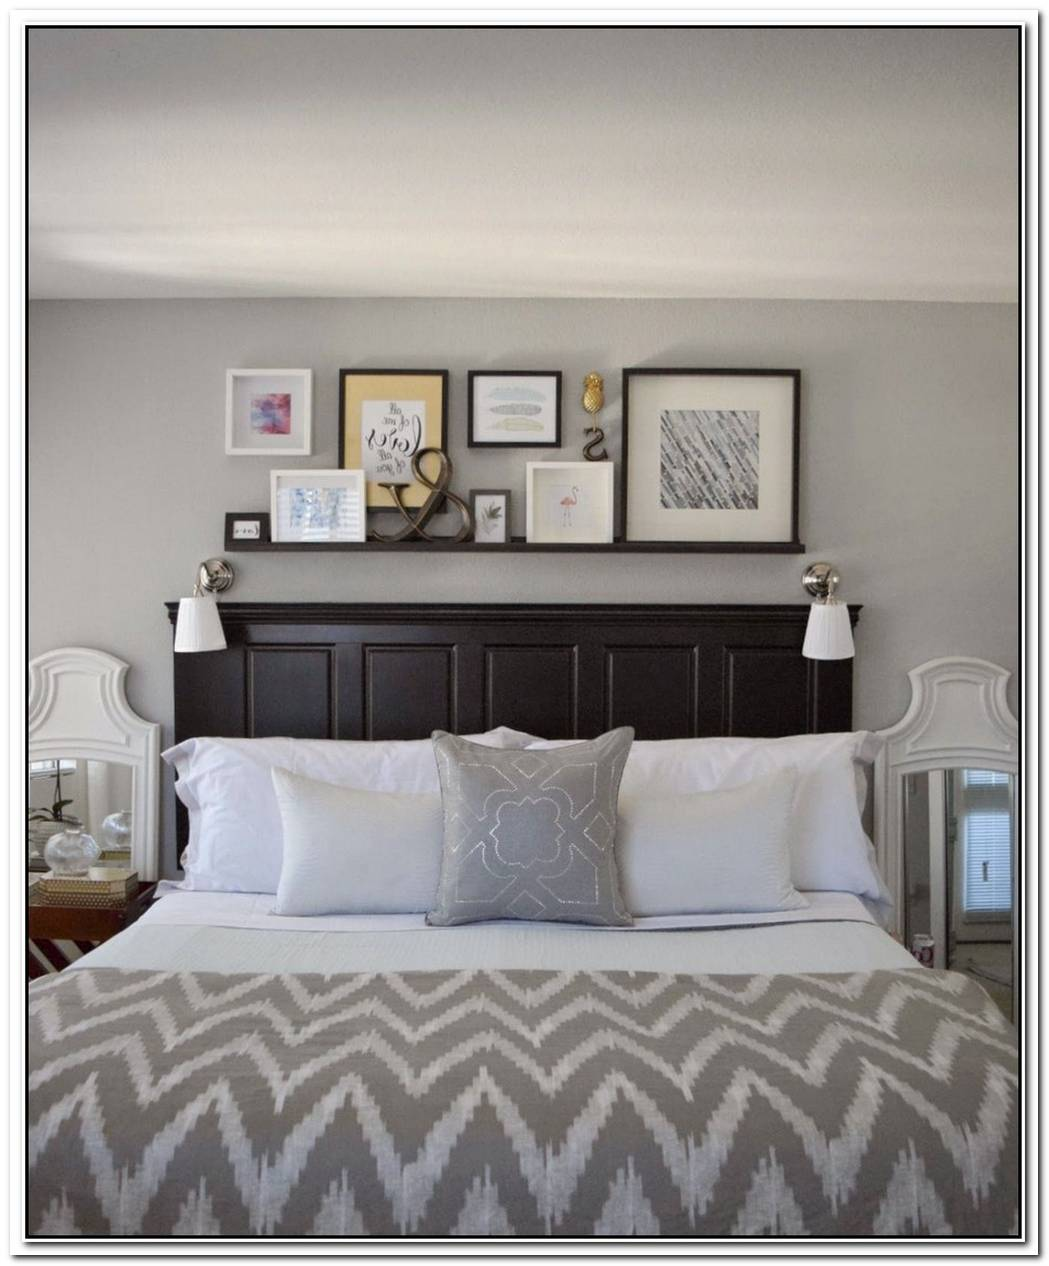 10 Things To Do With The Empty Space Over Your Bed